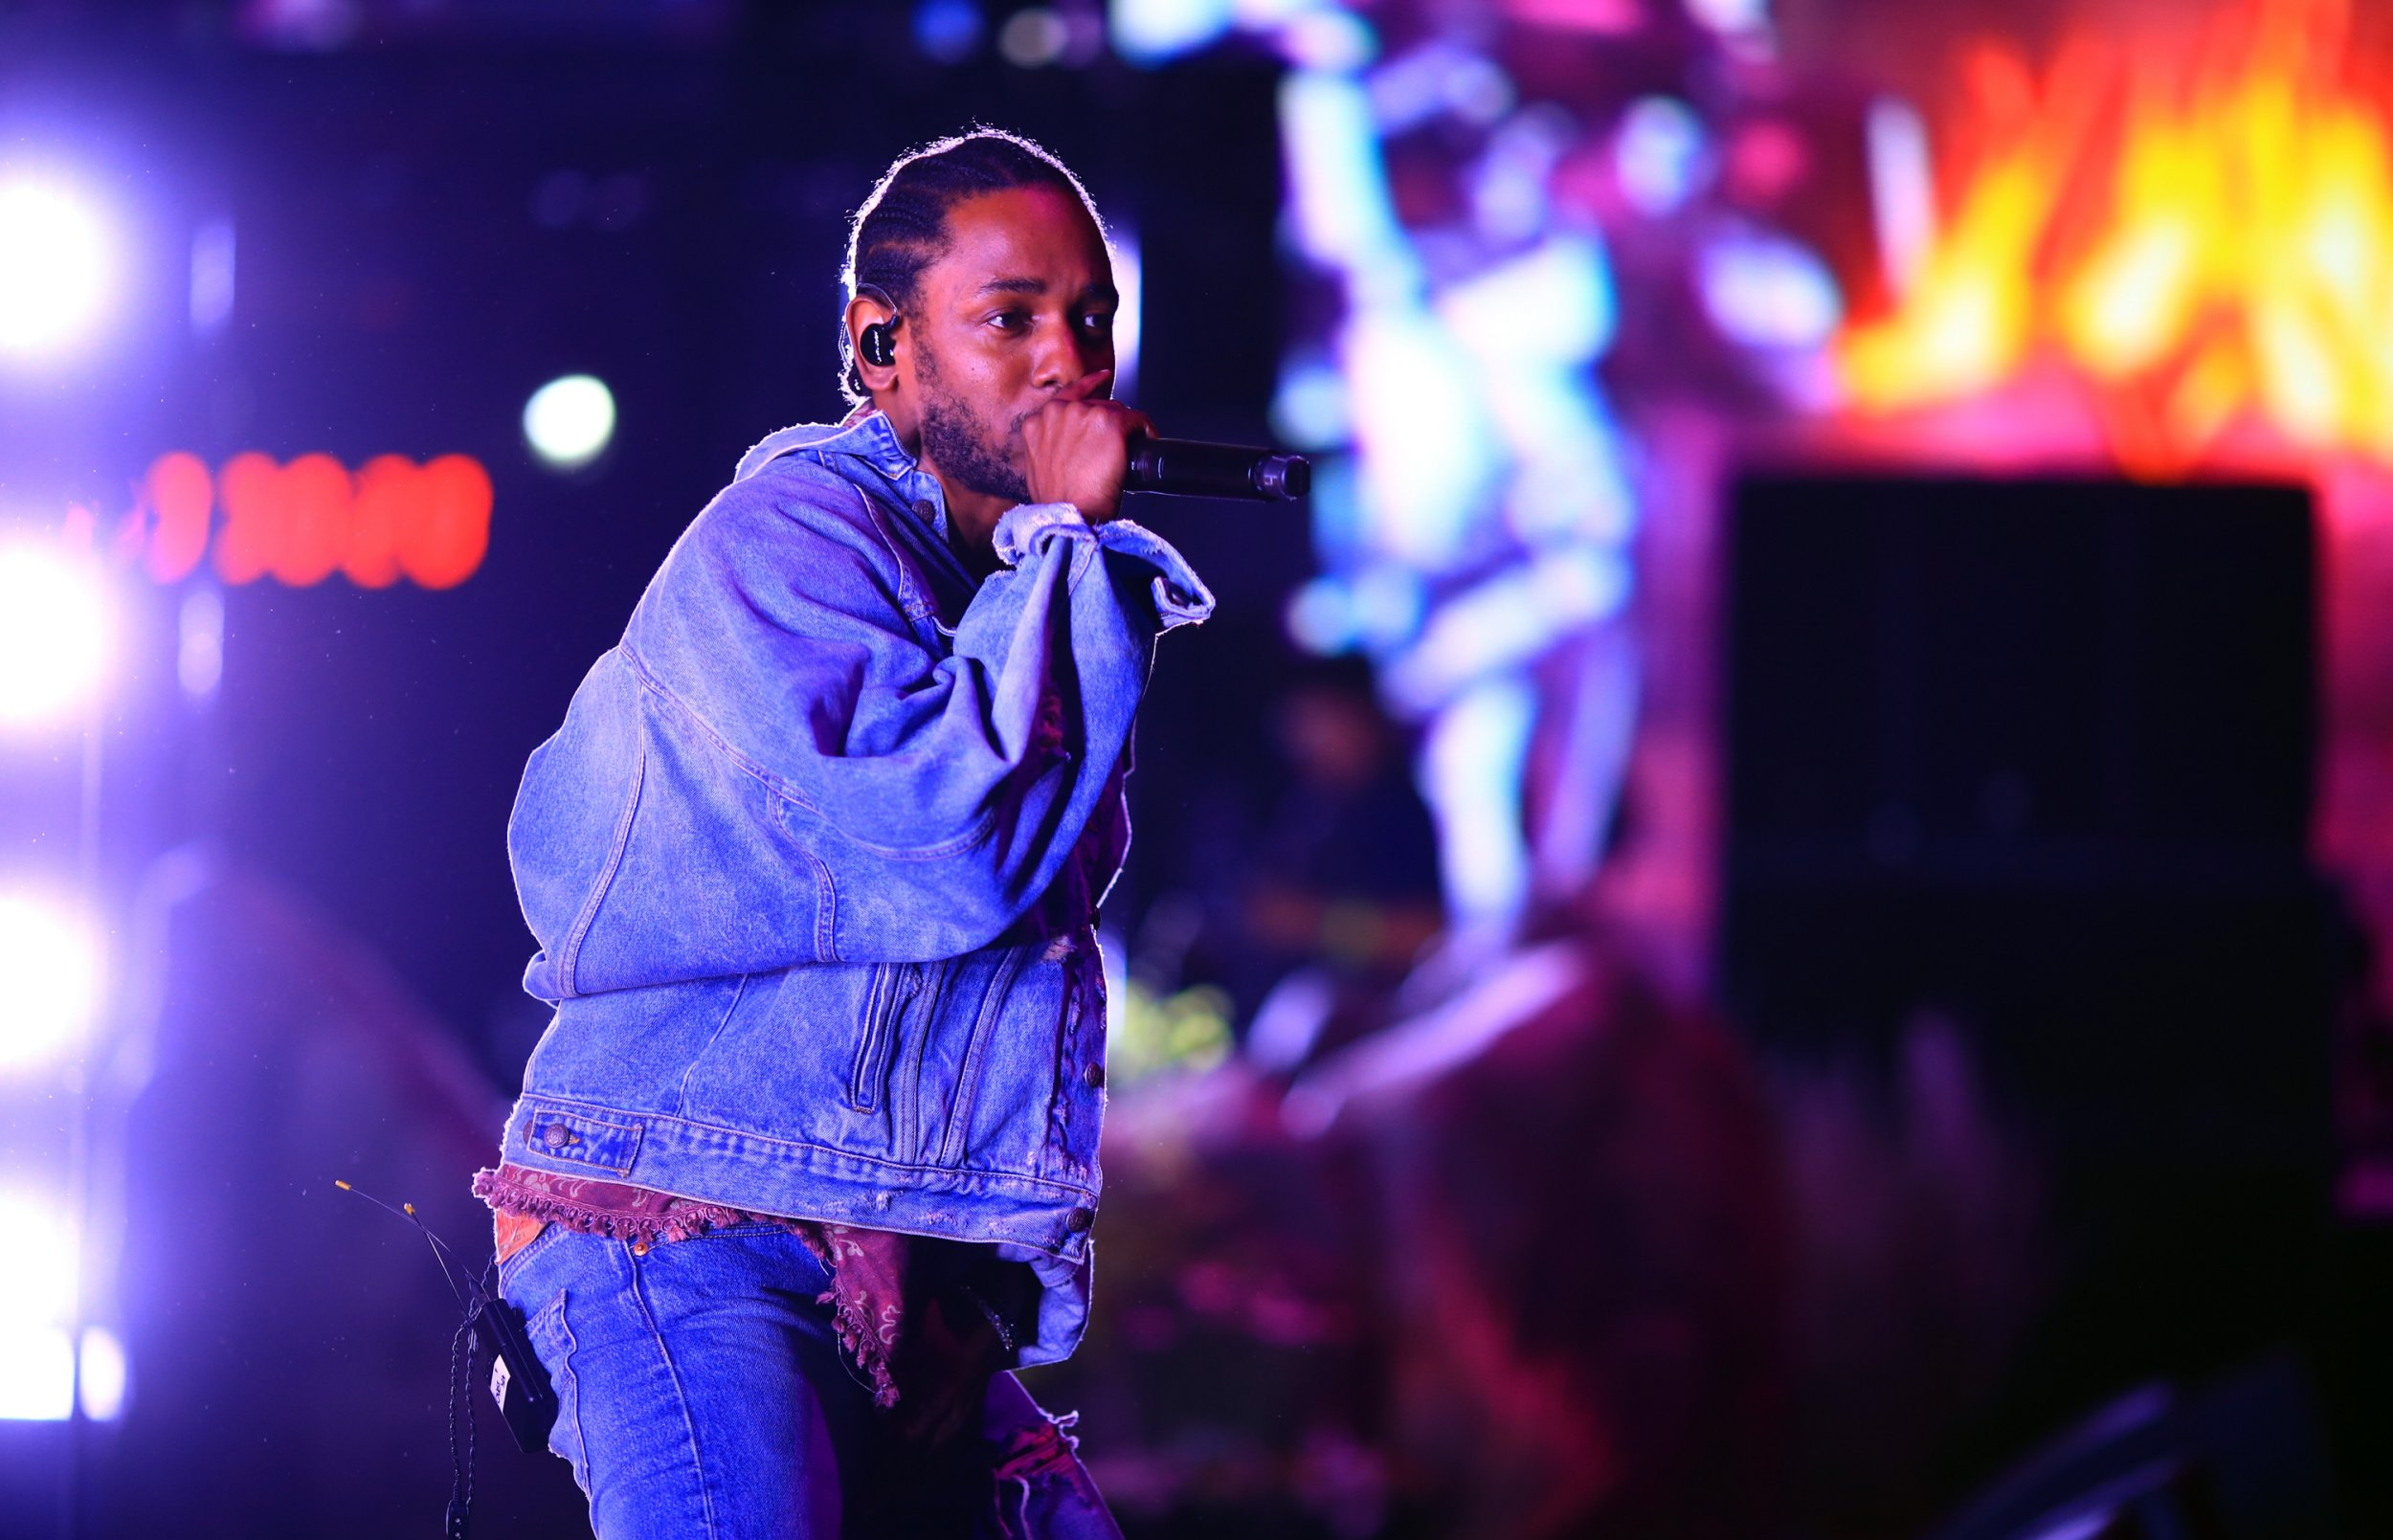 Kendrick Lamar becomes the first rapper to win the 2018 Pulitzer Prize for Music